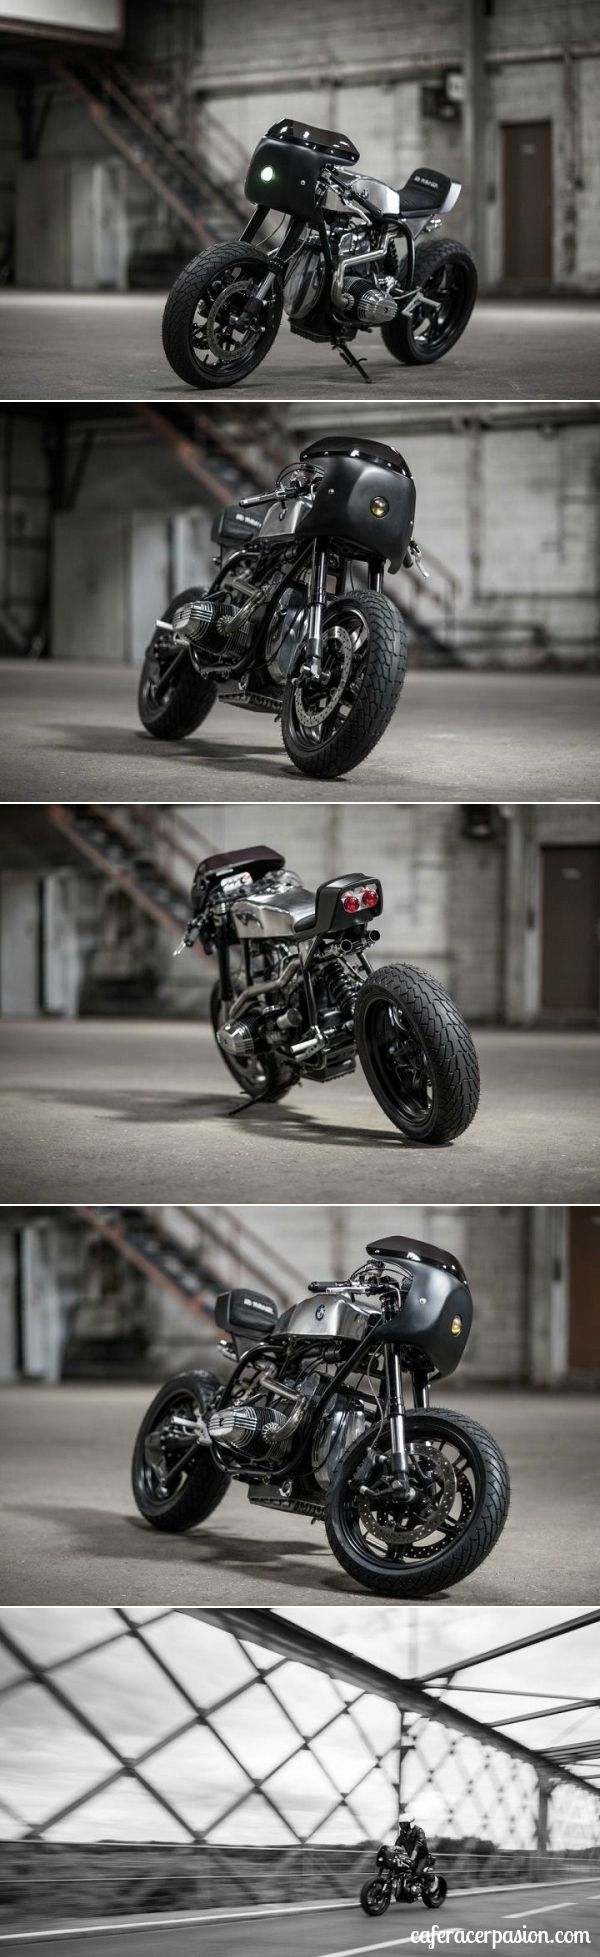 BMW R65 Cafe Racer by Ed Turner #motorcycles #caferacer #motos | caferacerpasion.com